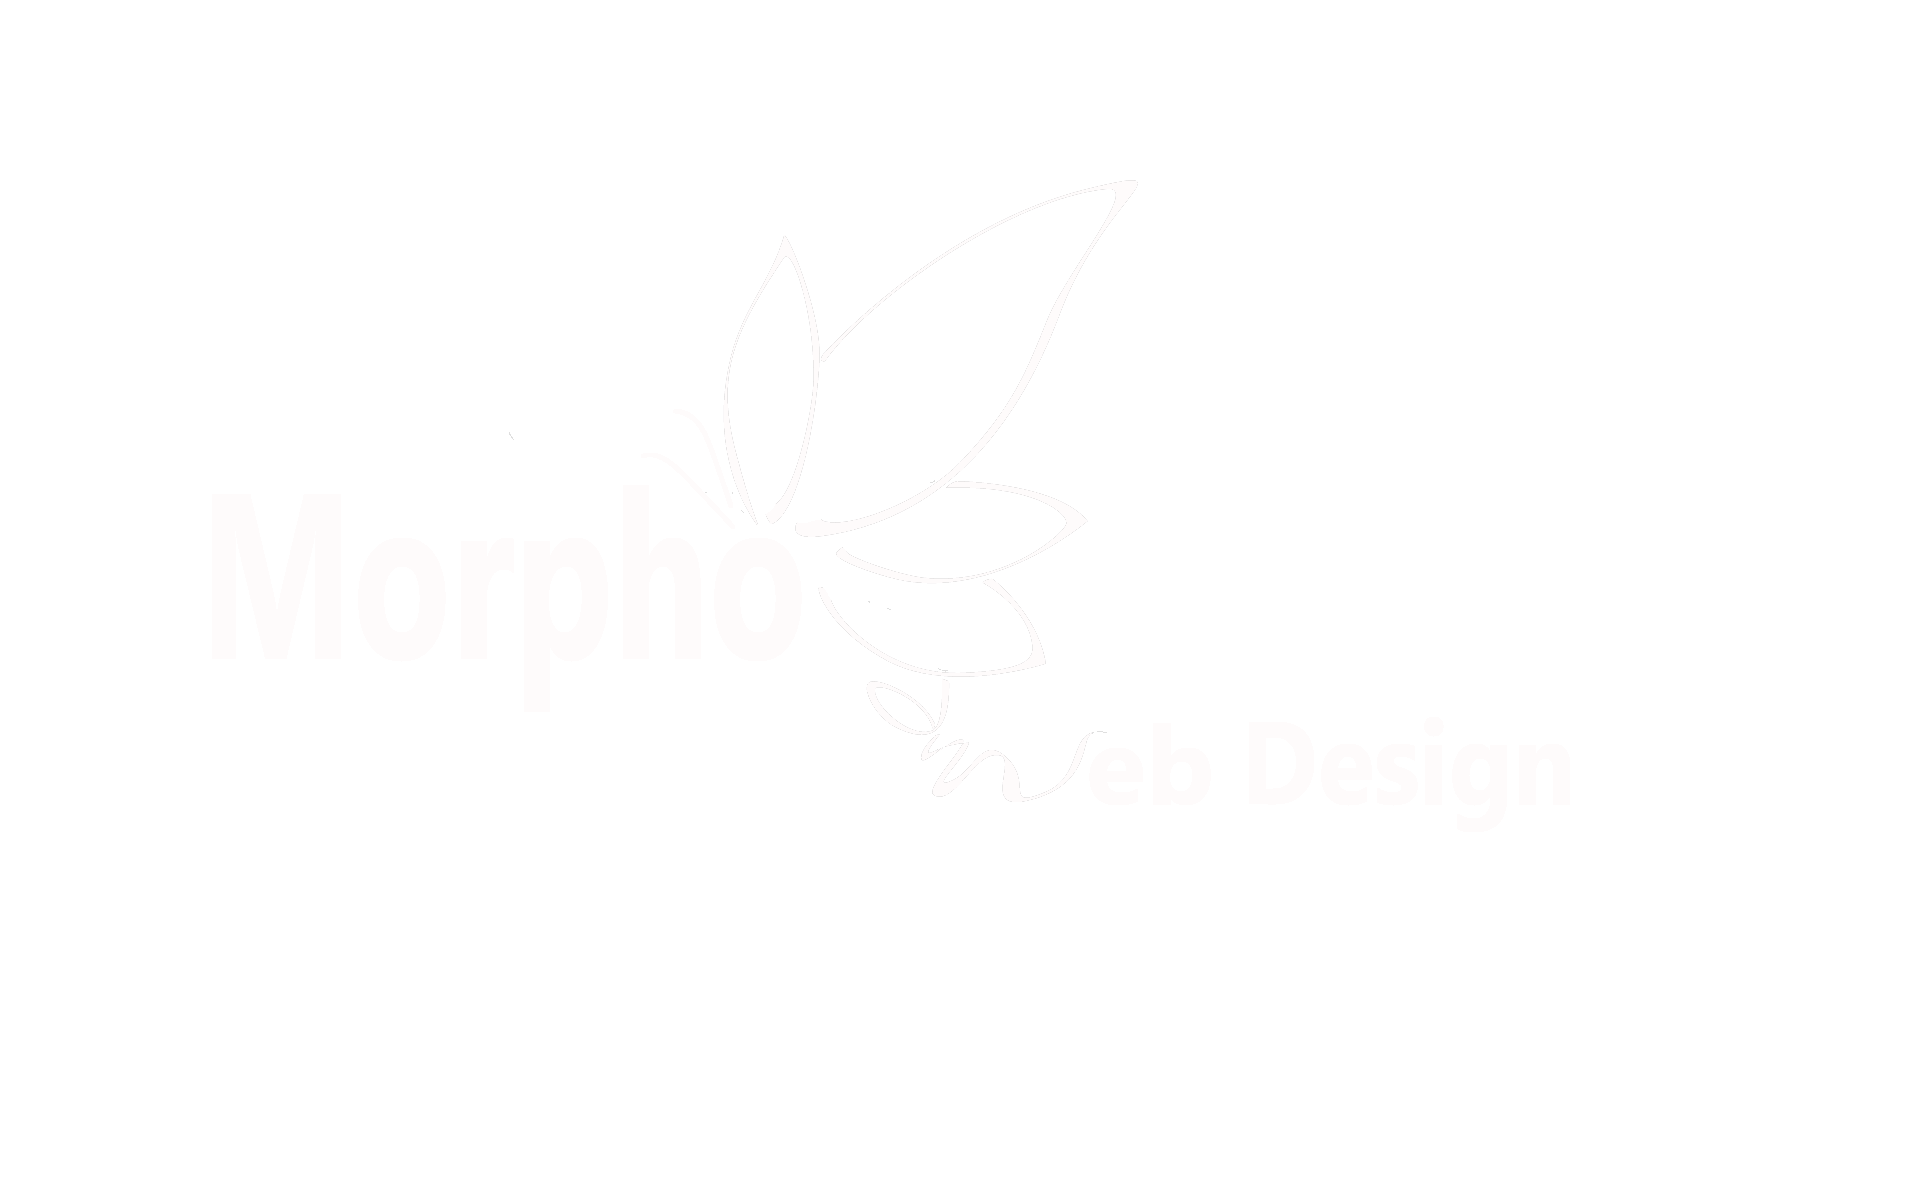 Morpho Web Design